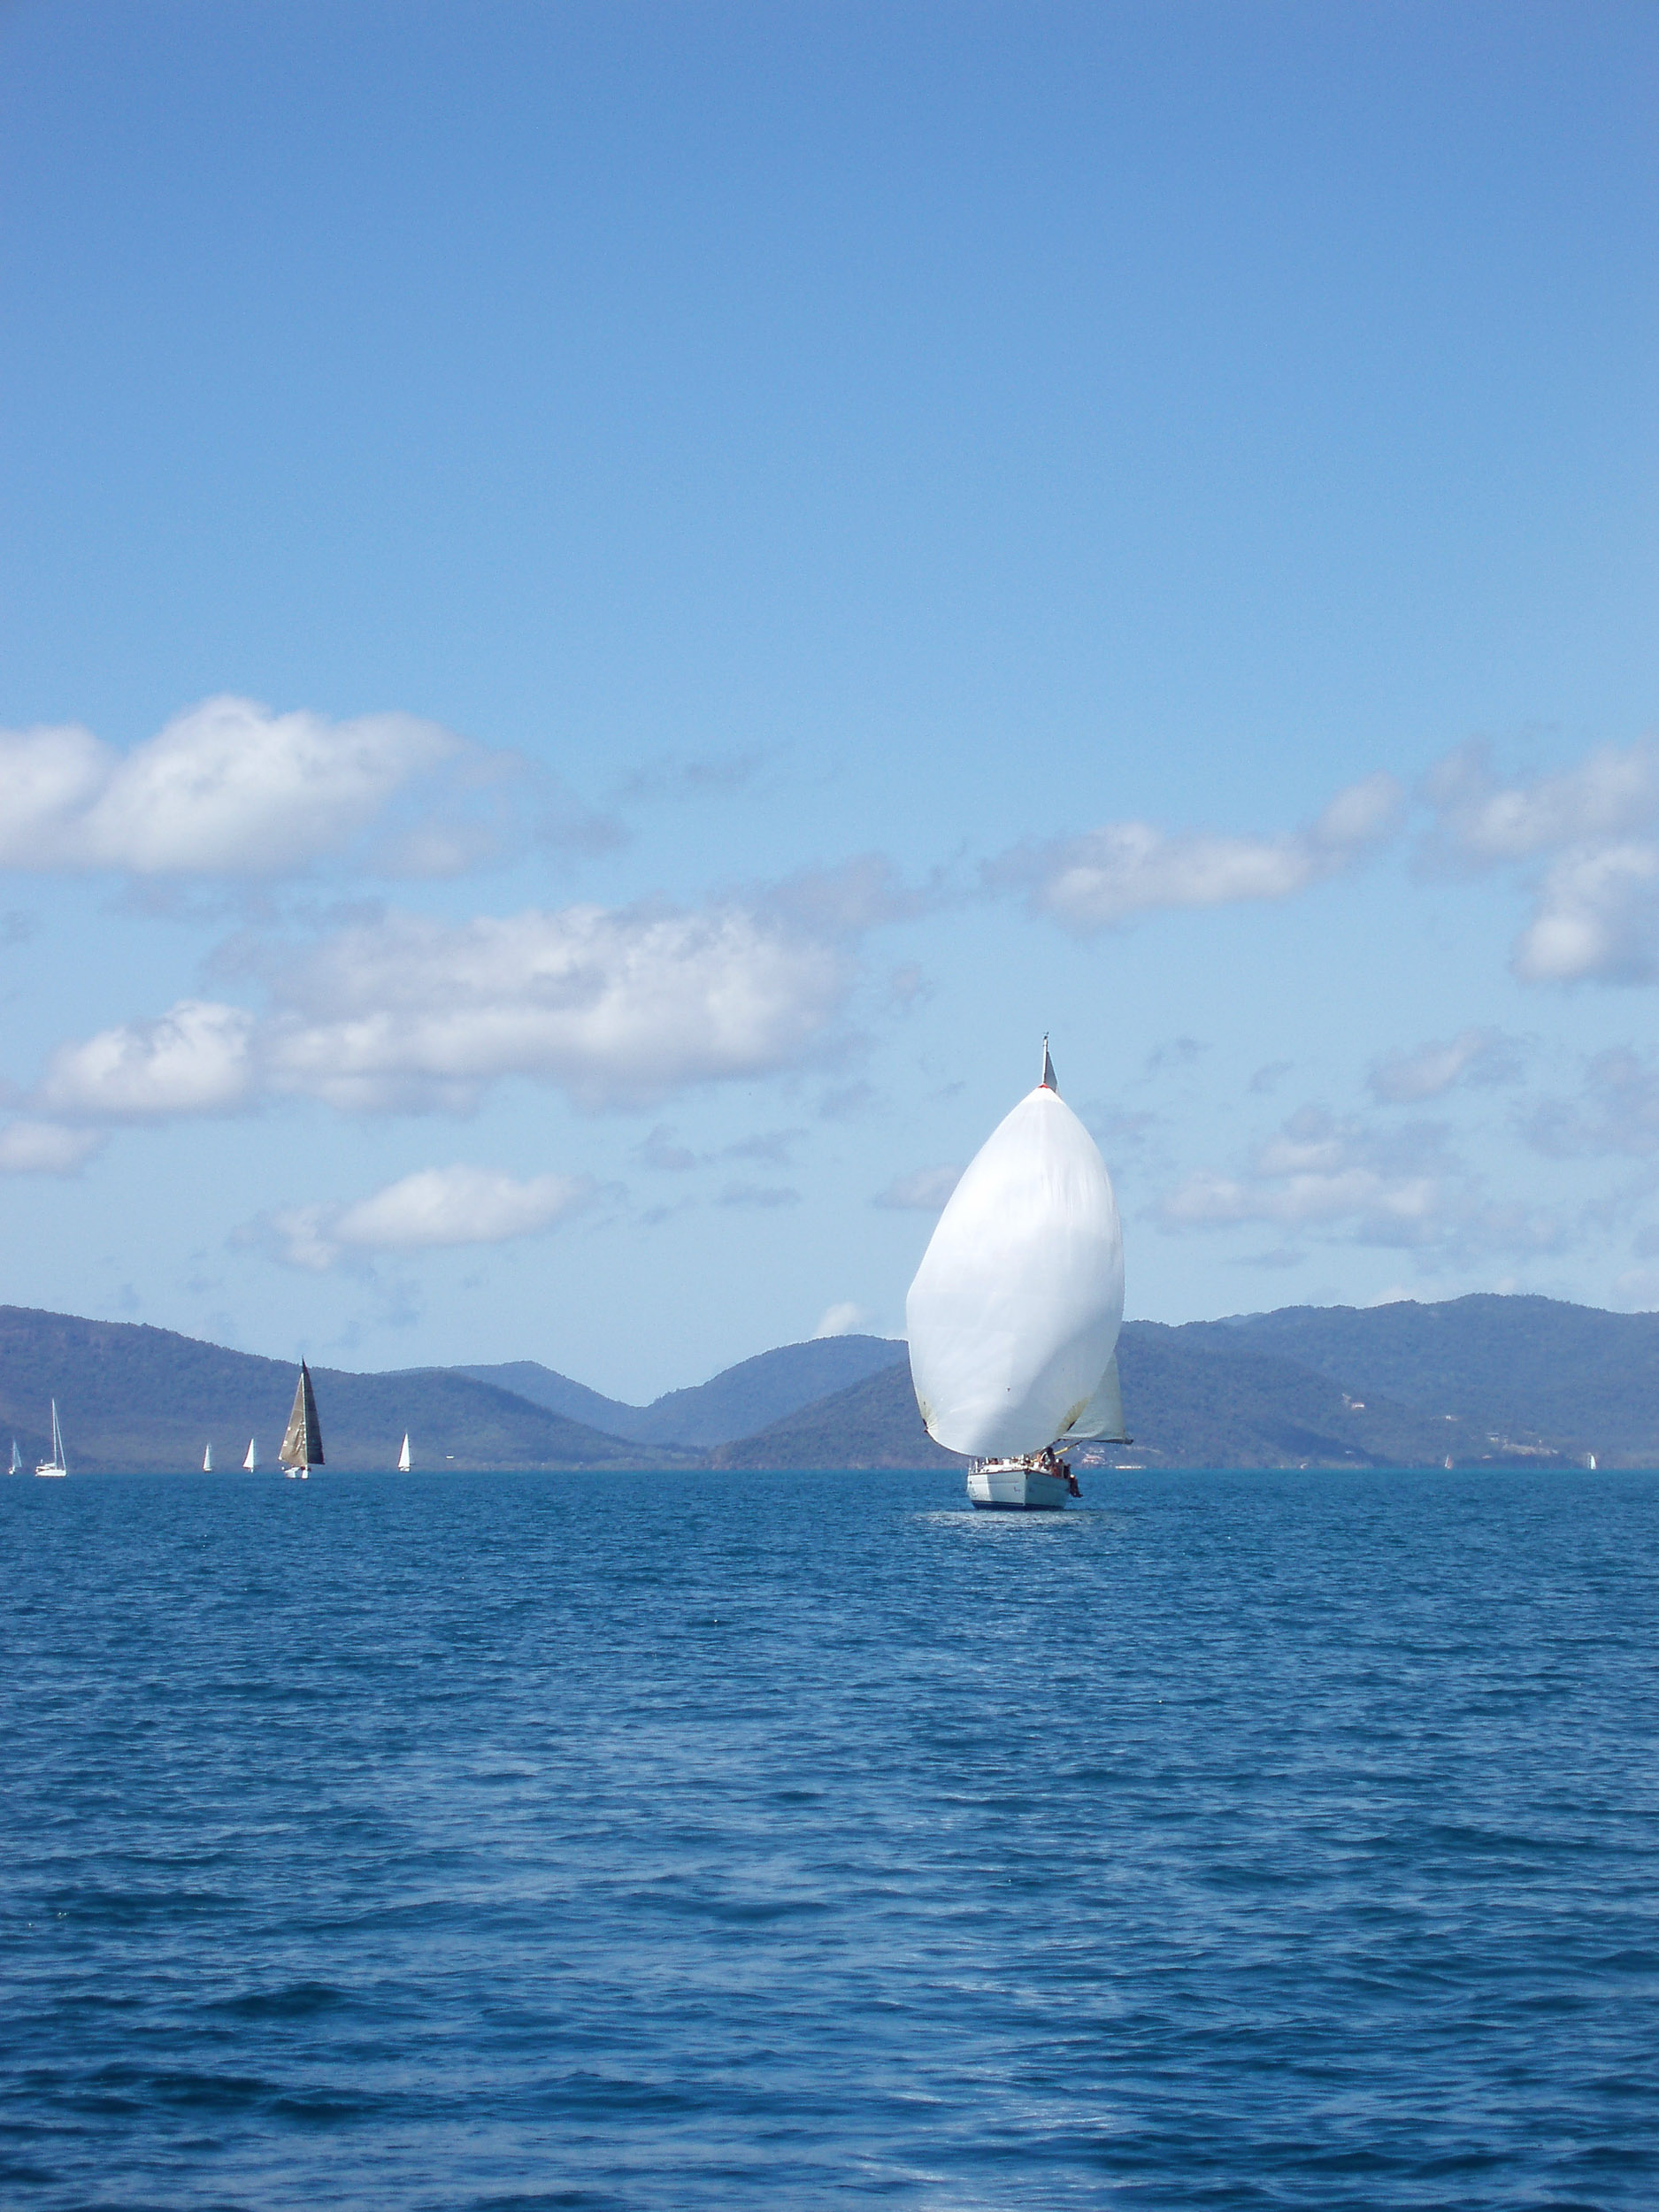 a yacht sailing with a large white spinnaker sail over a calm ocean